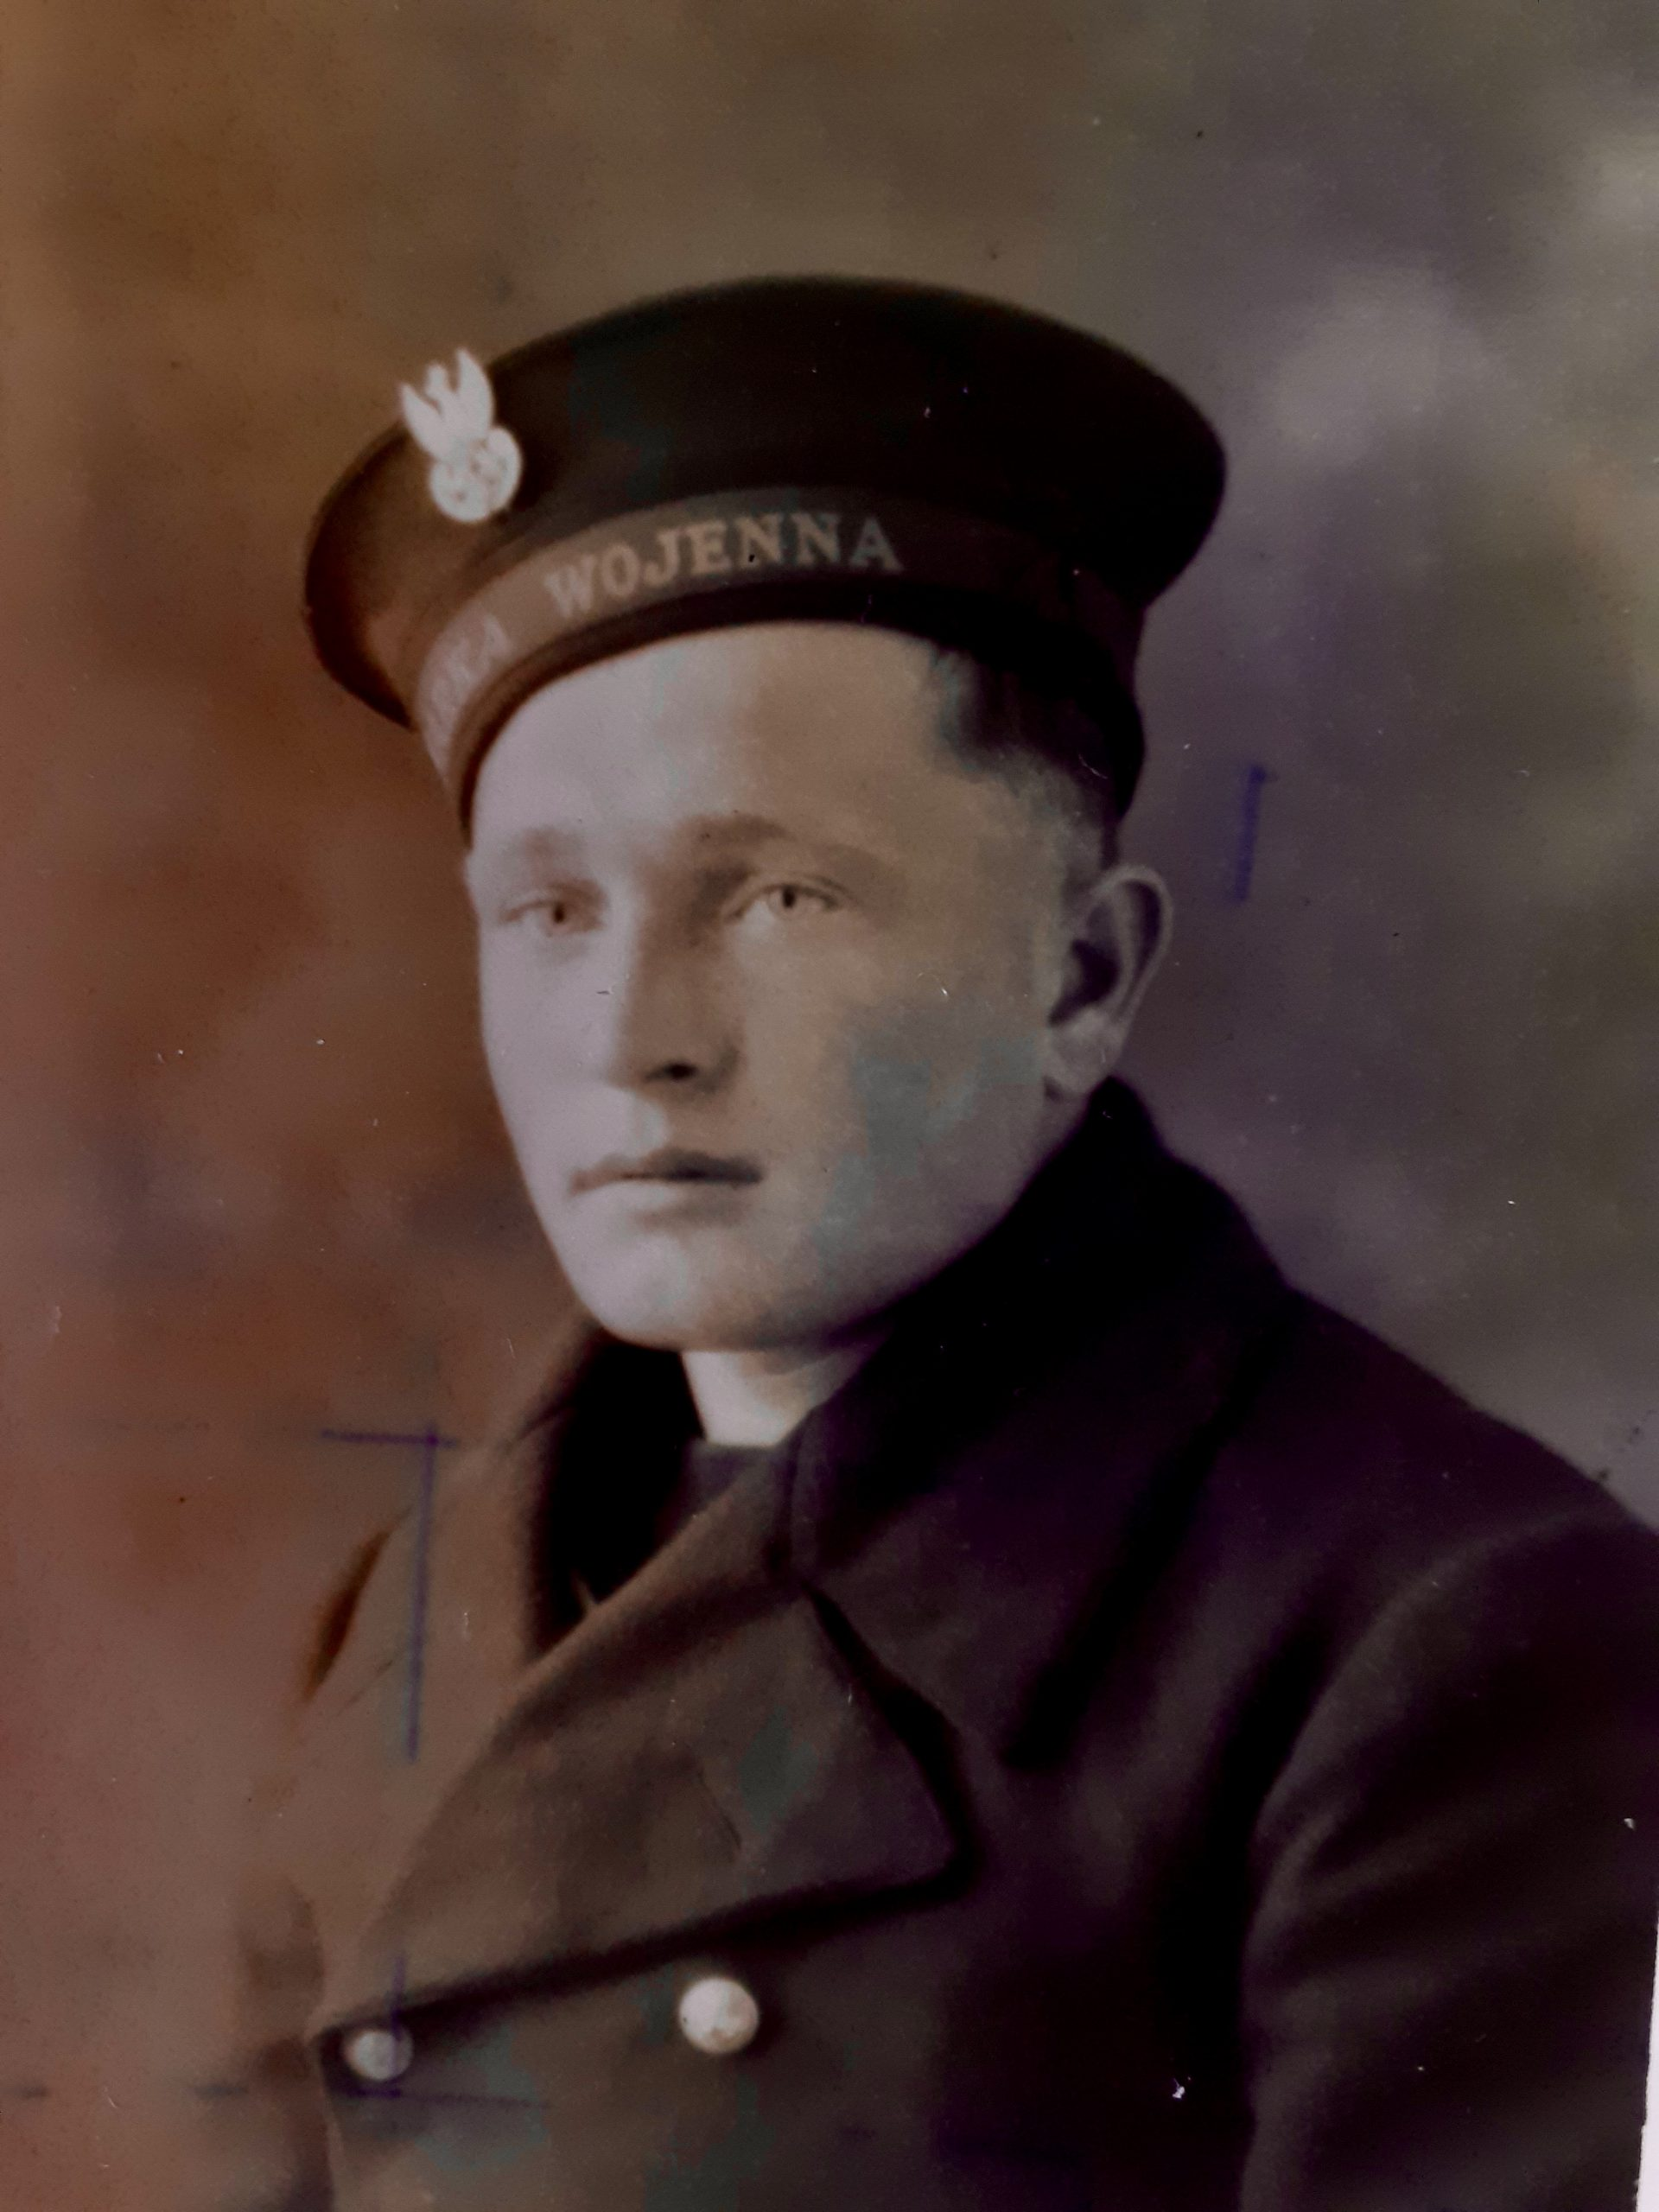 Antoni Zielonka in uniform